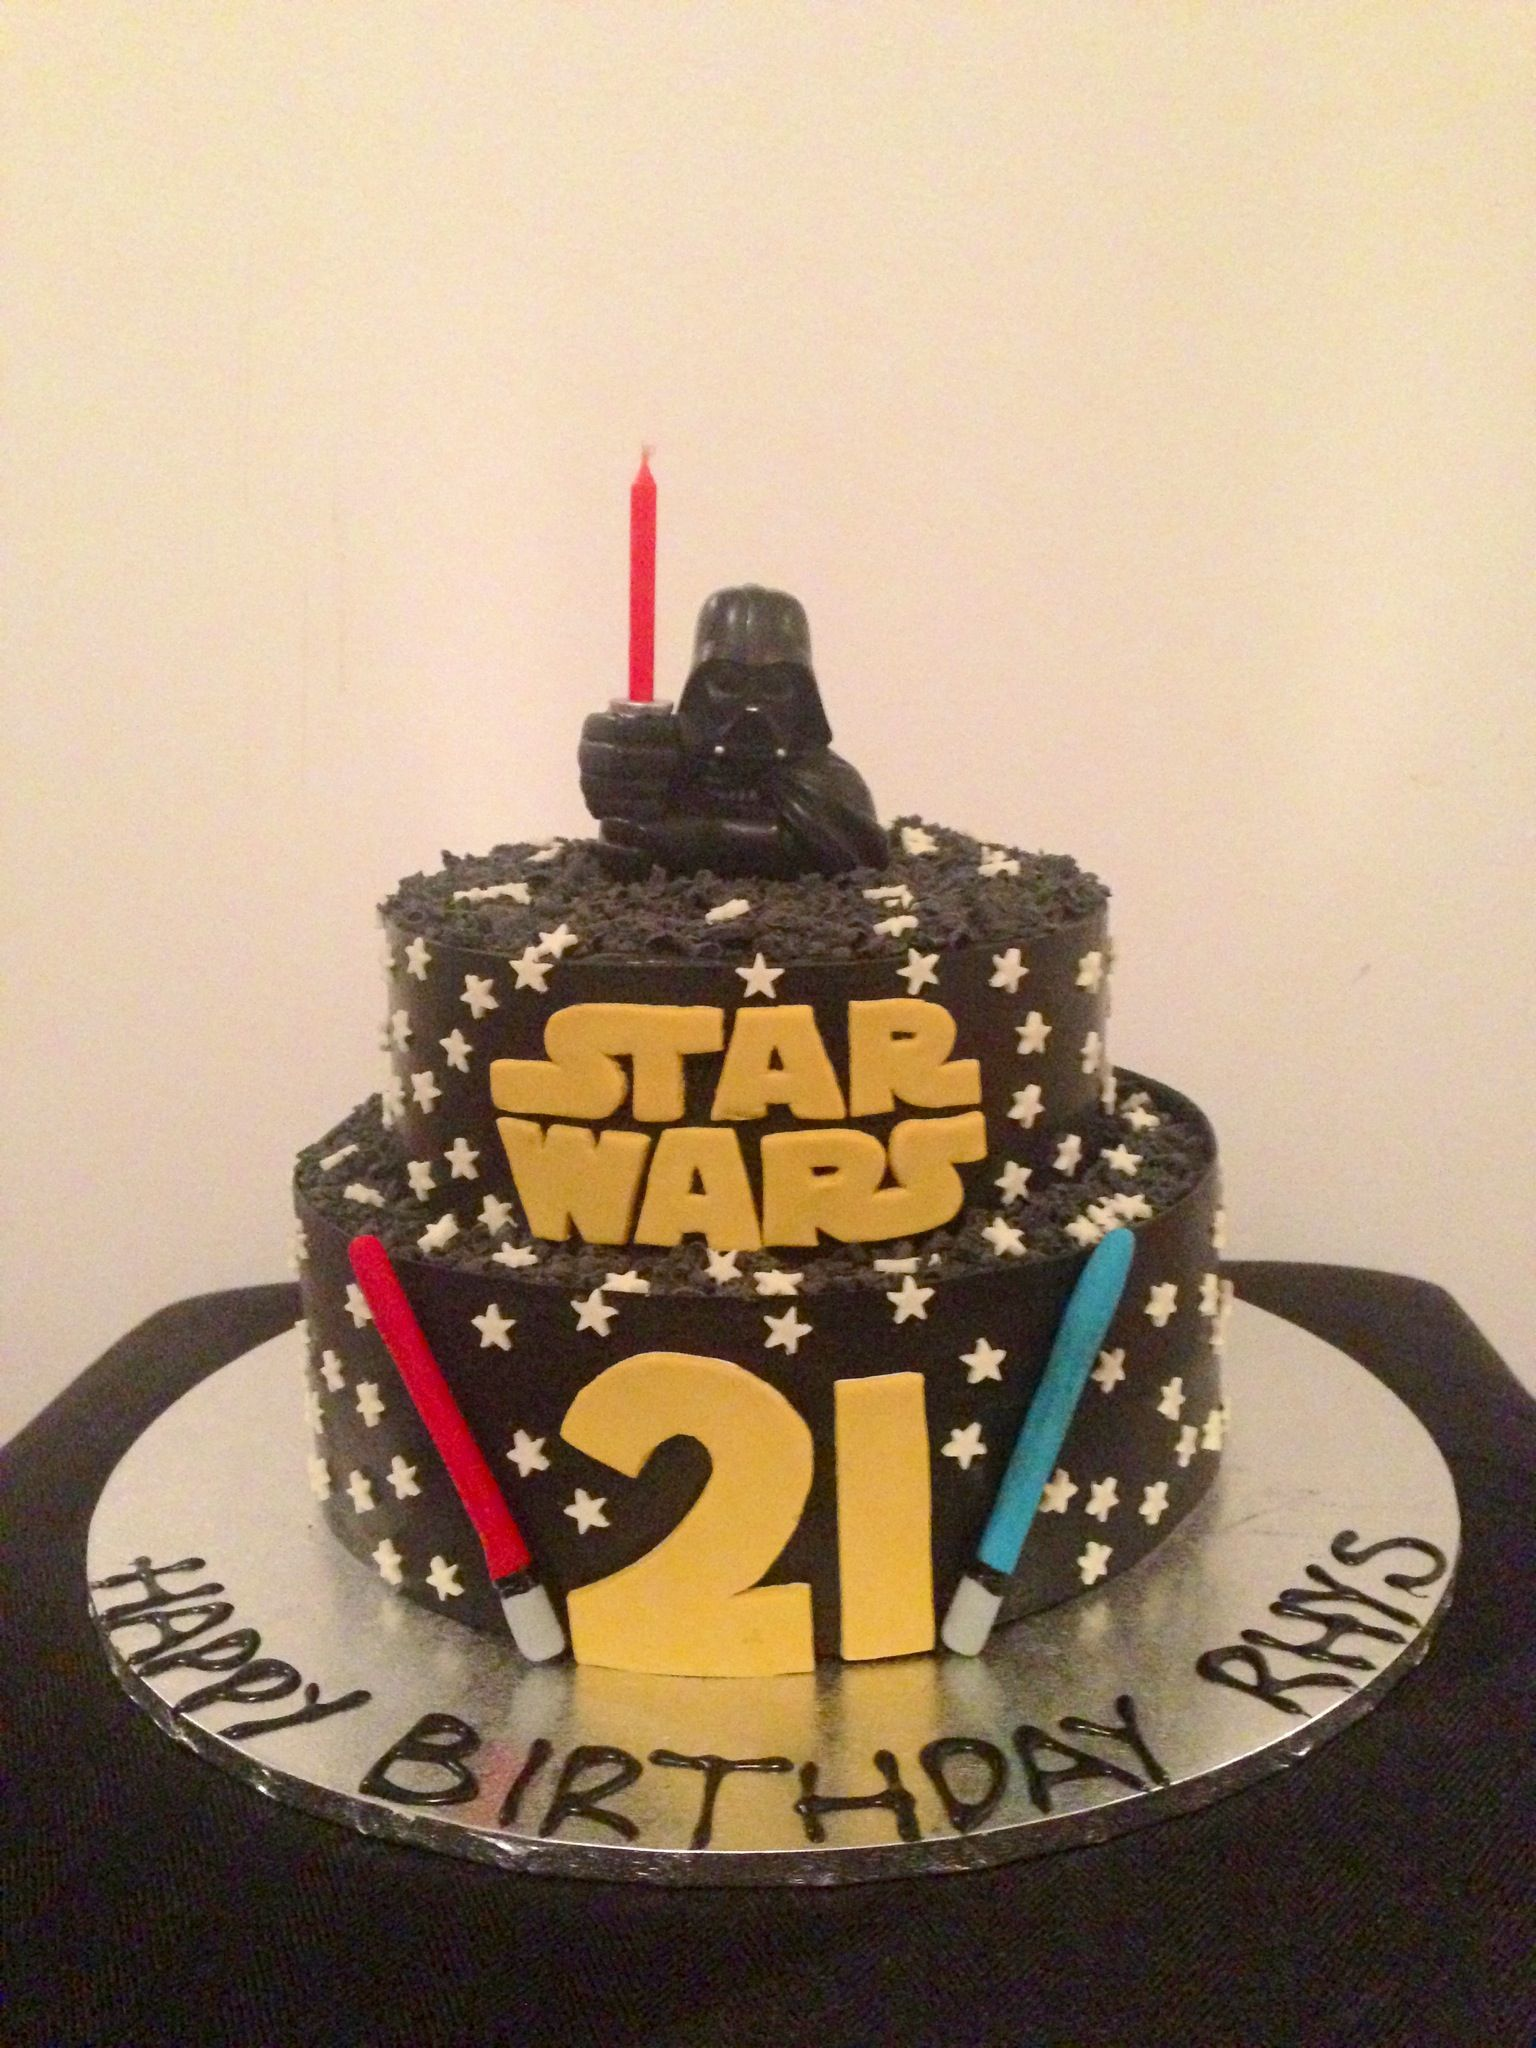 Star Wars Birthday Cake For A 21st Chocolate Collars Coloured Black